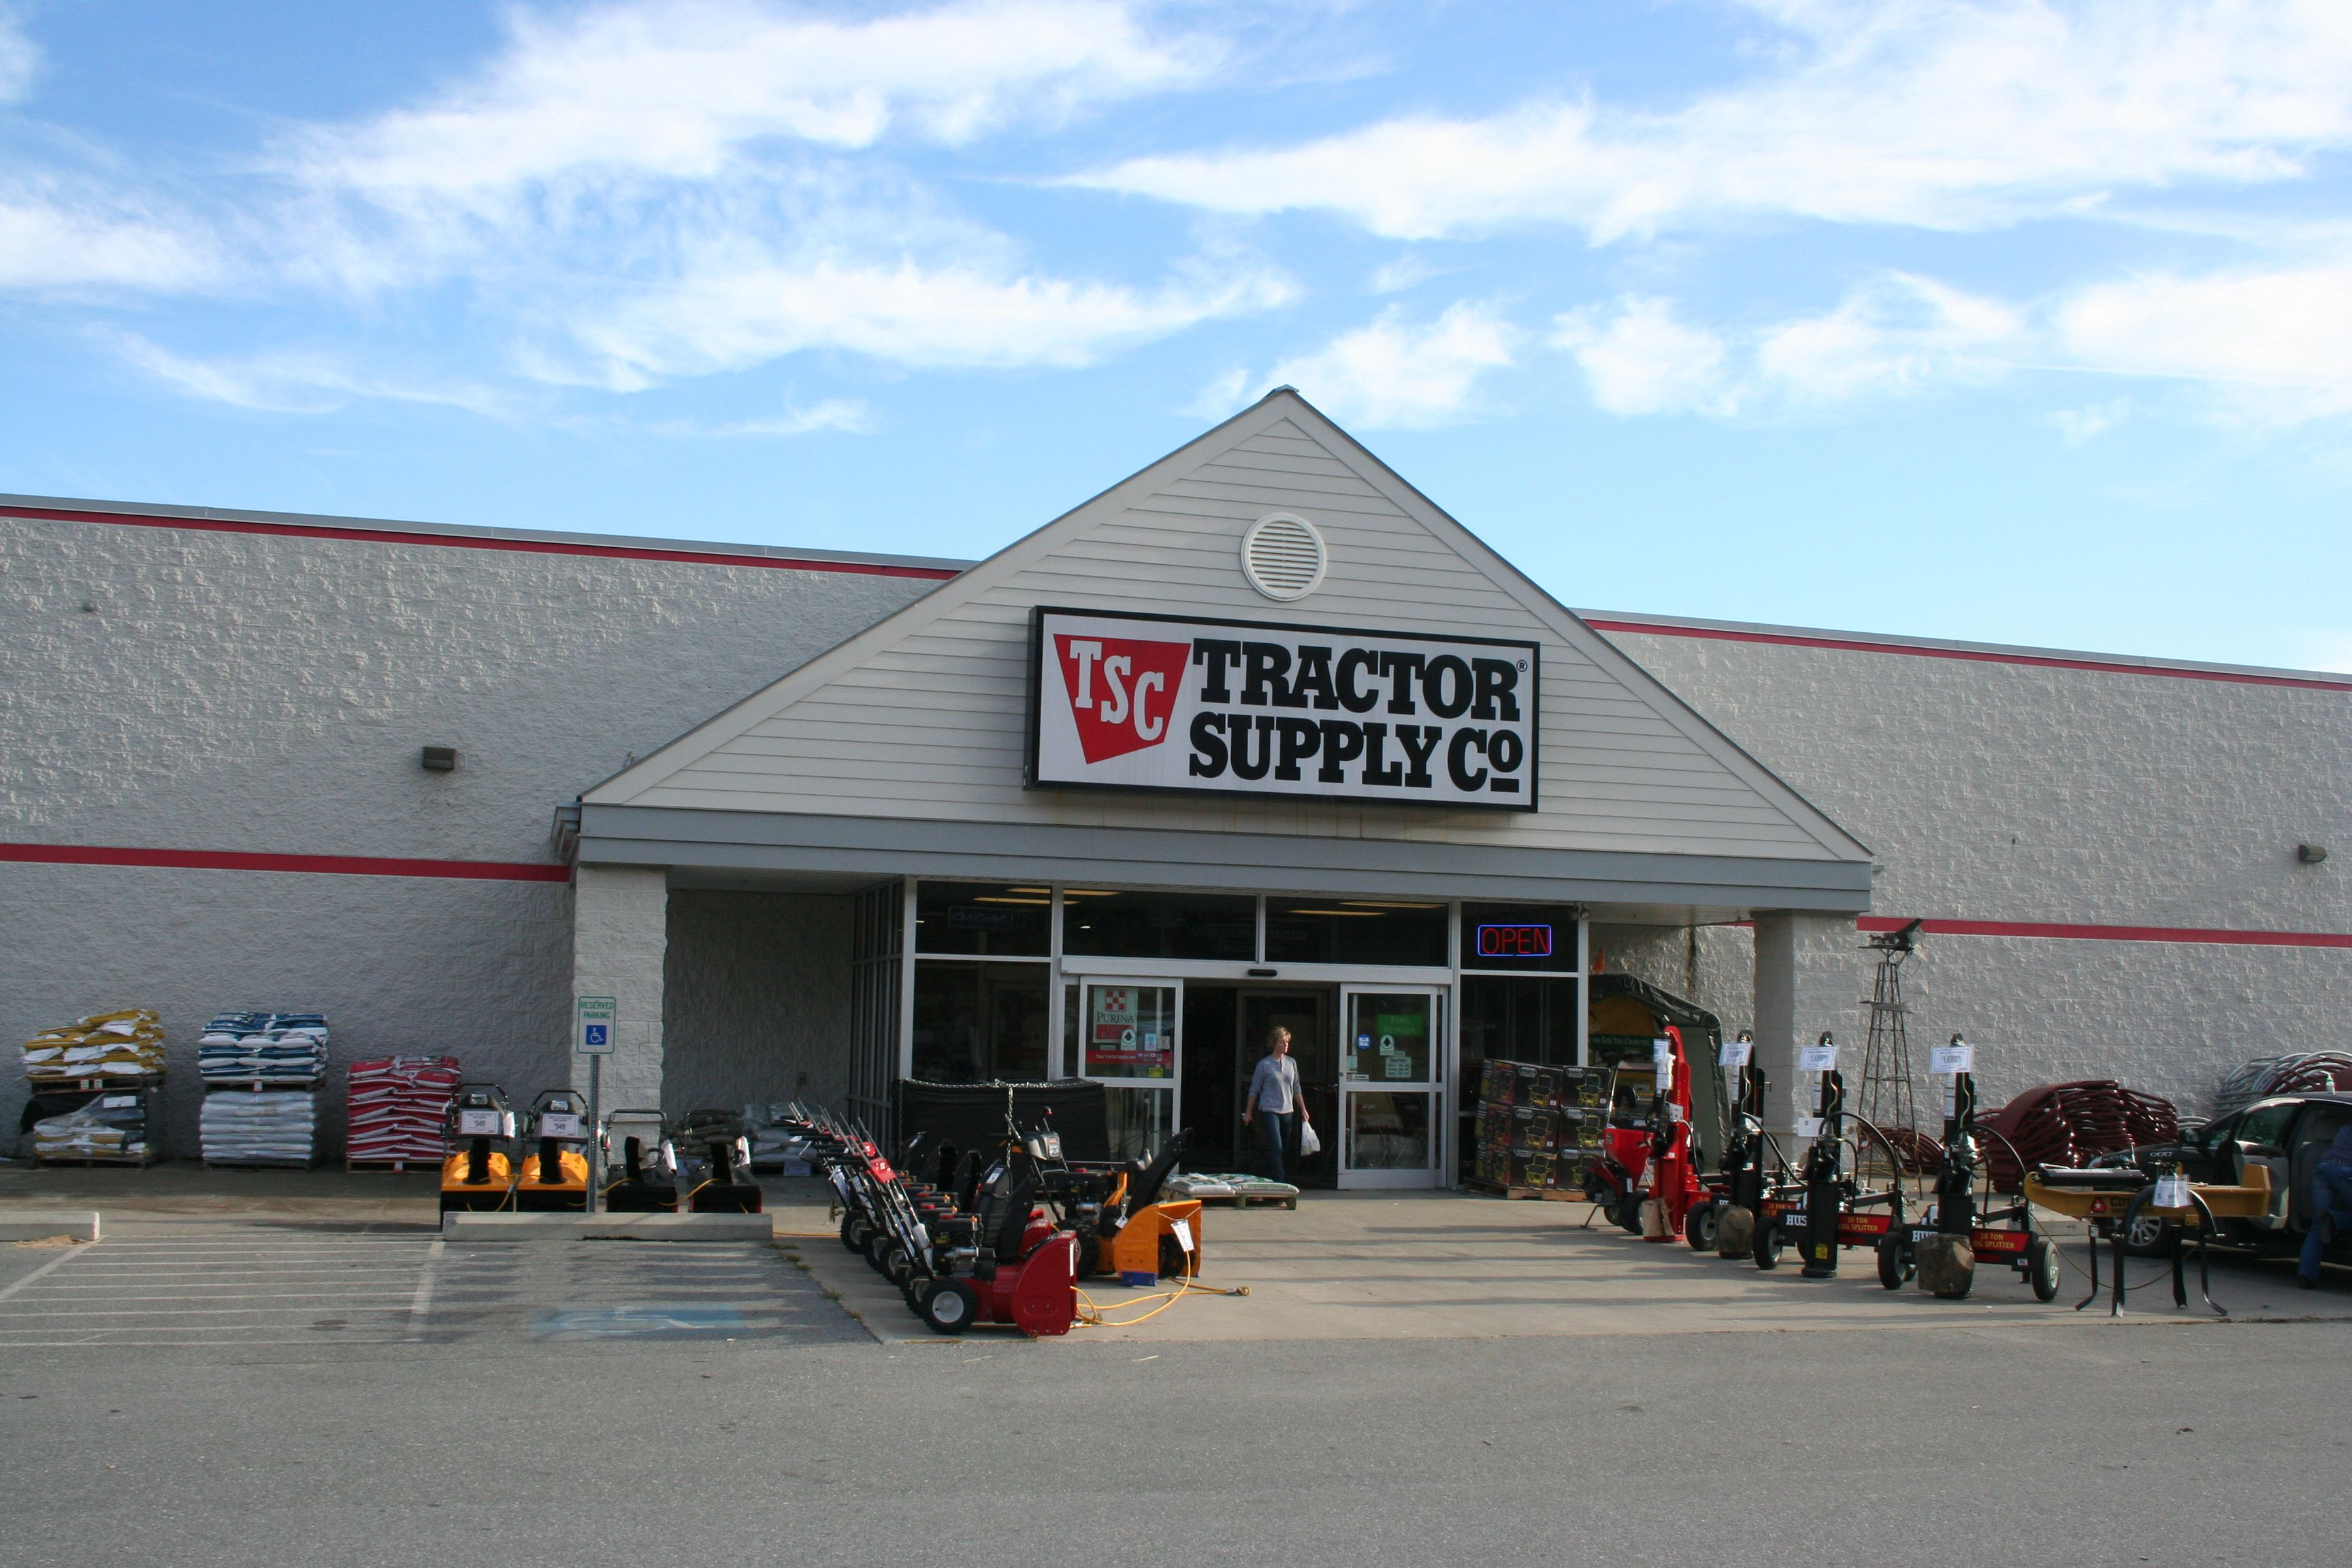 Tsc Tractor Supply : Tractor supply plainfield flower farm